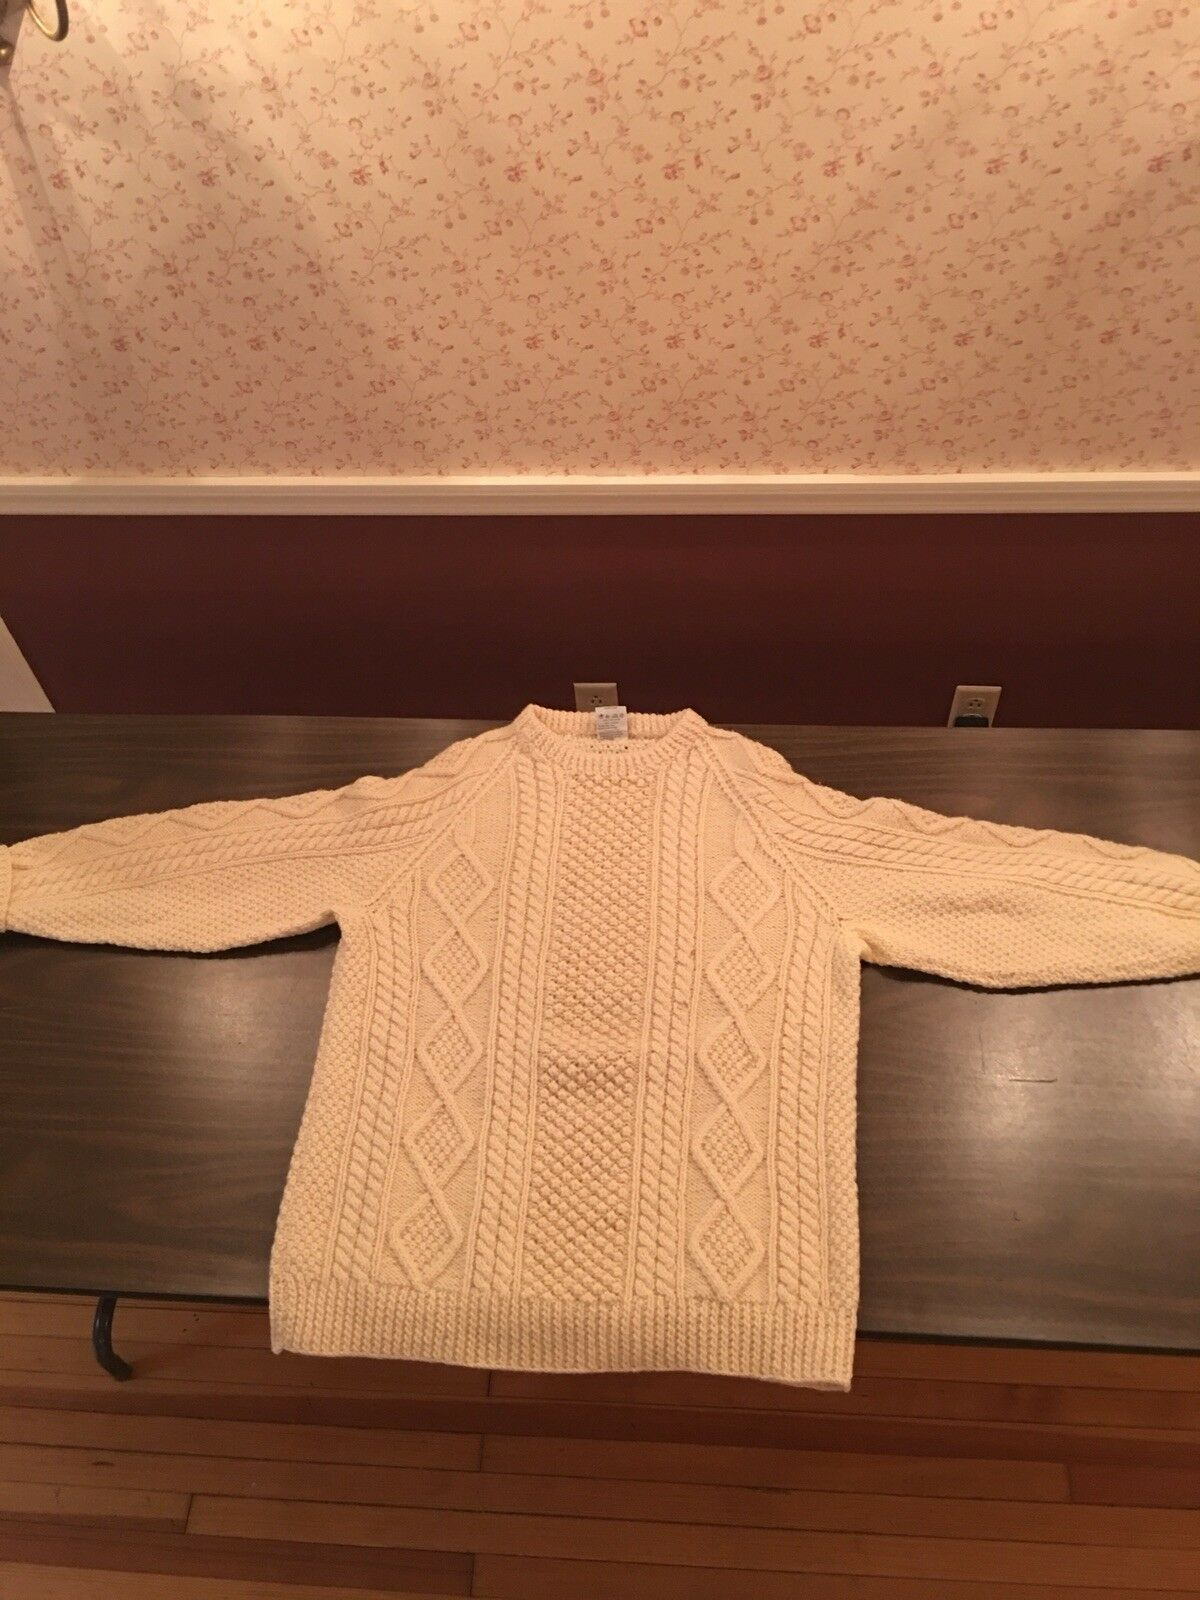 Authentic Handknit Irish Fisherman Sweater